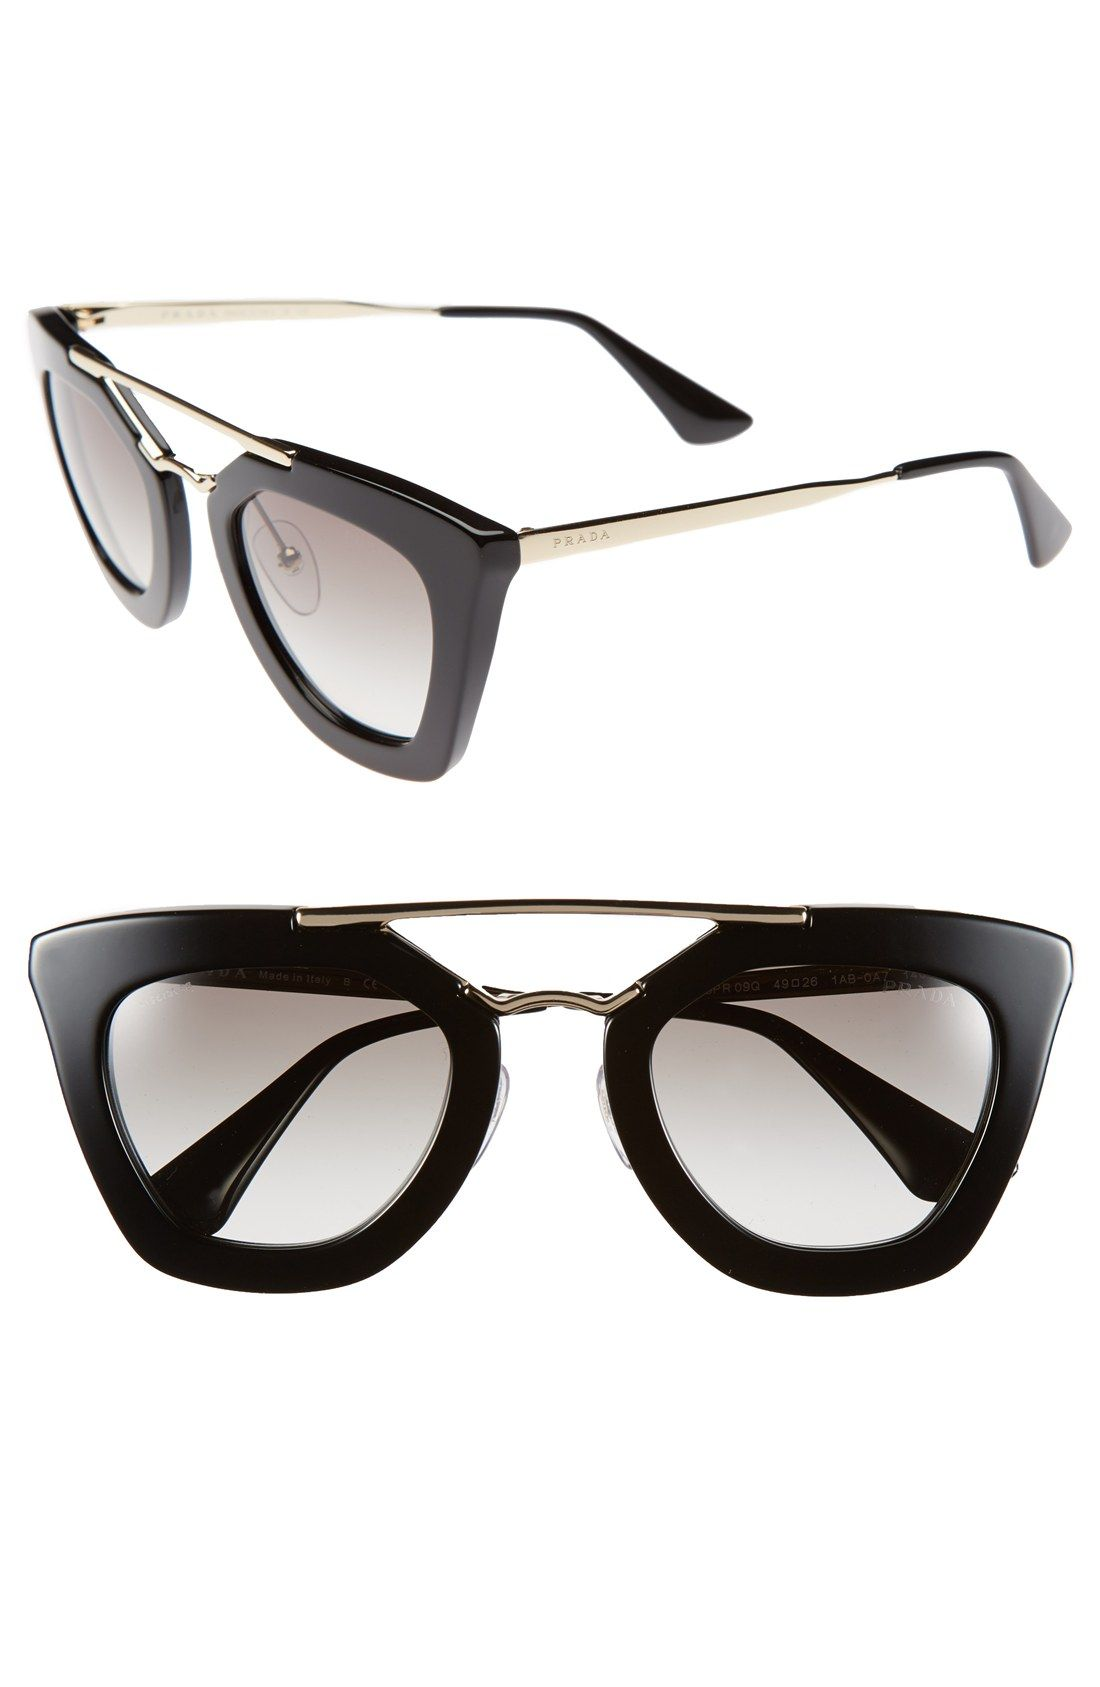 9f7c8feab67 Free shipping and returns on Prada 49mm Retro Sunglasses at Nordstrom.com.  A polished metallic browline stands out on the vintage-chic profile of ...